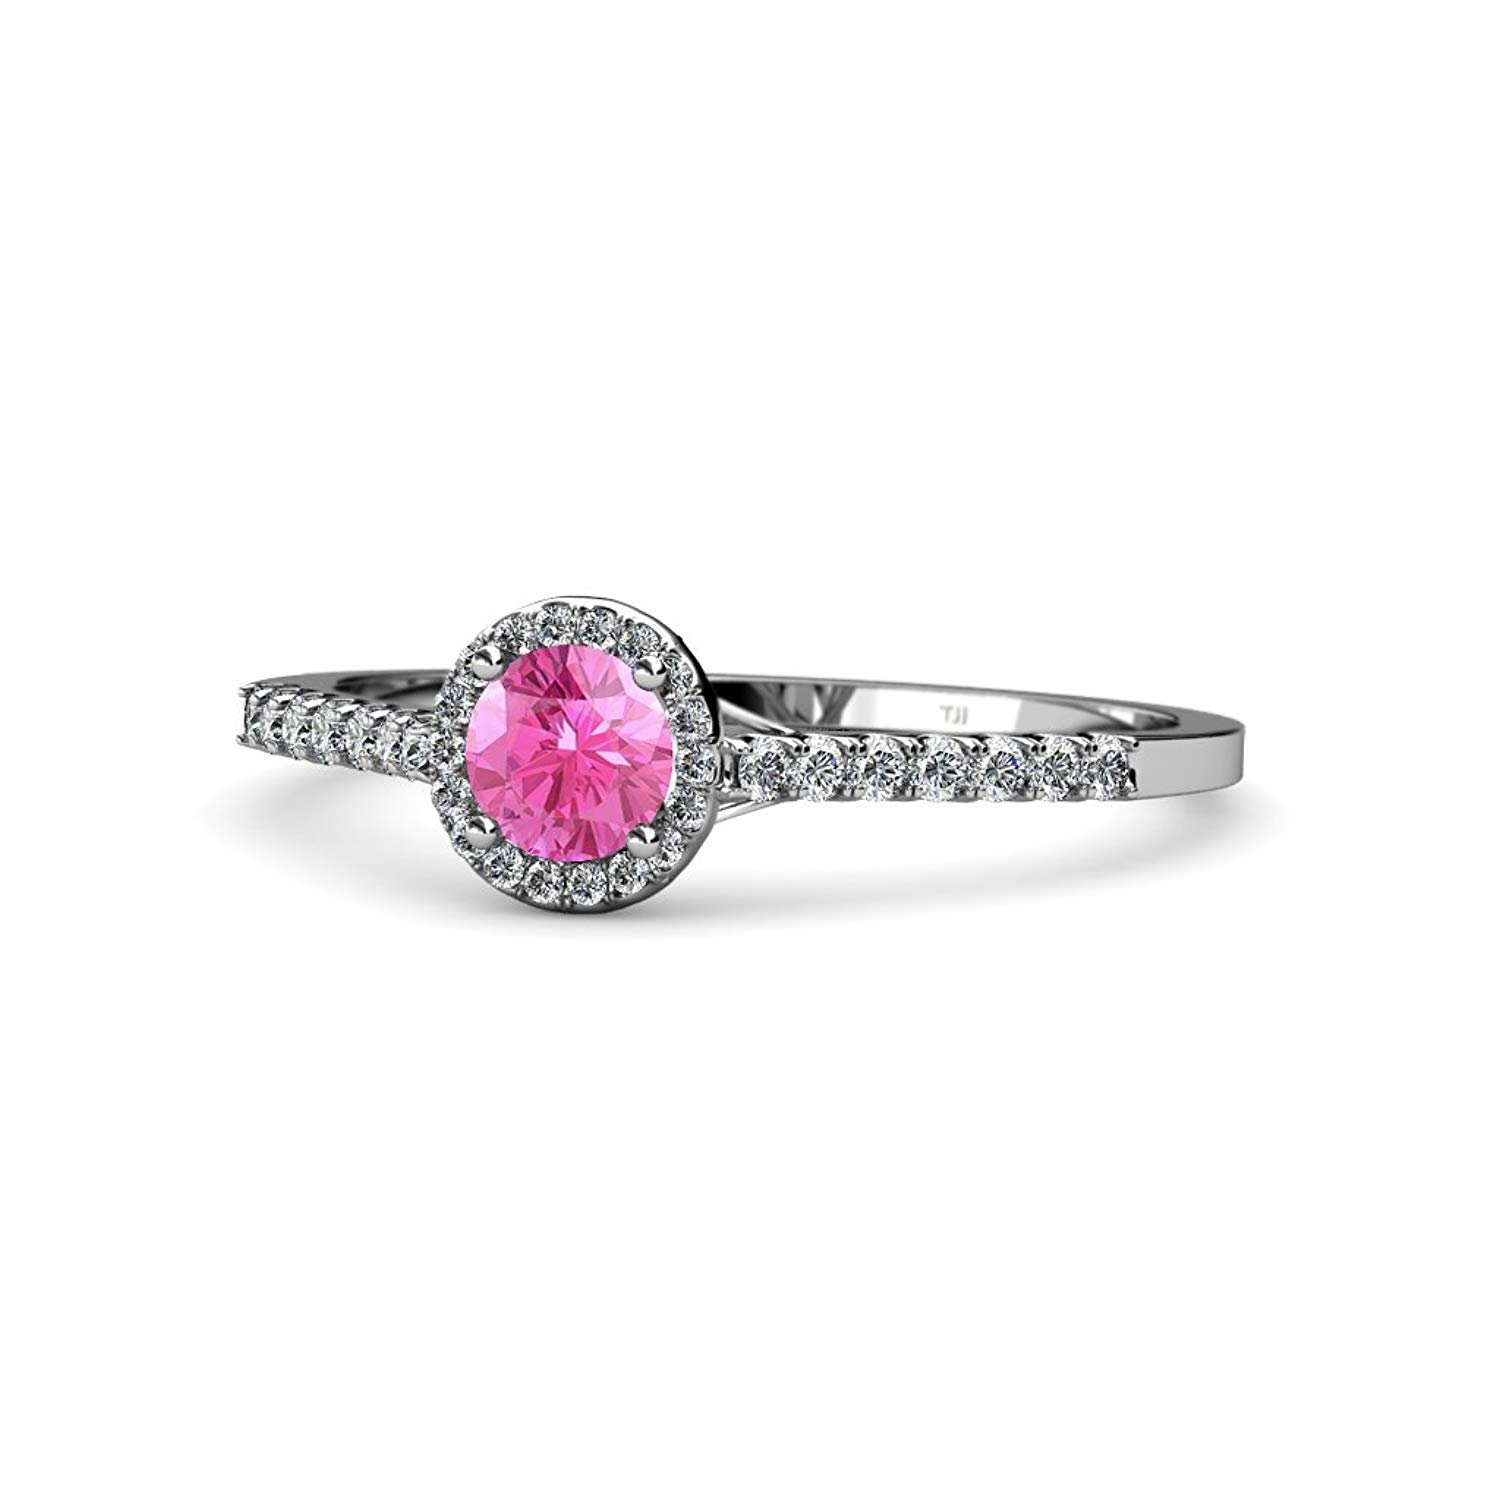 Pink Sapphire and Diamond (SI2-I1, G-H) Halo Engagement Ring 1.00 ct tw in 14K White Gold.size 9.0 by TriJewels